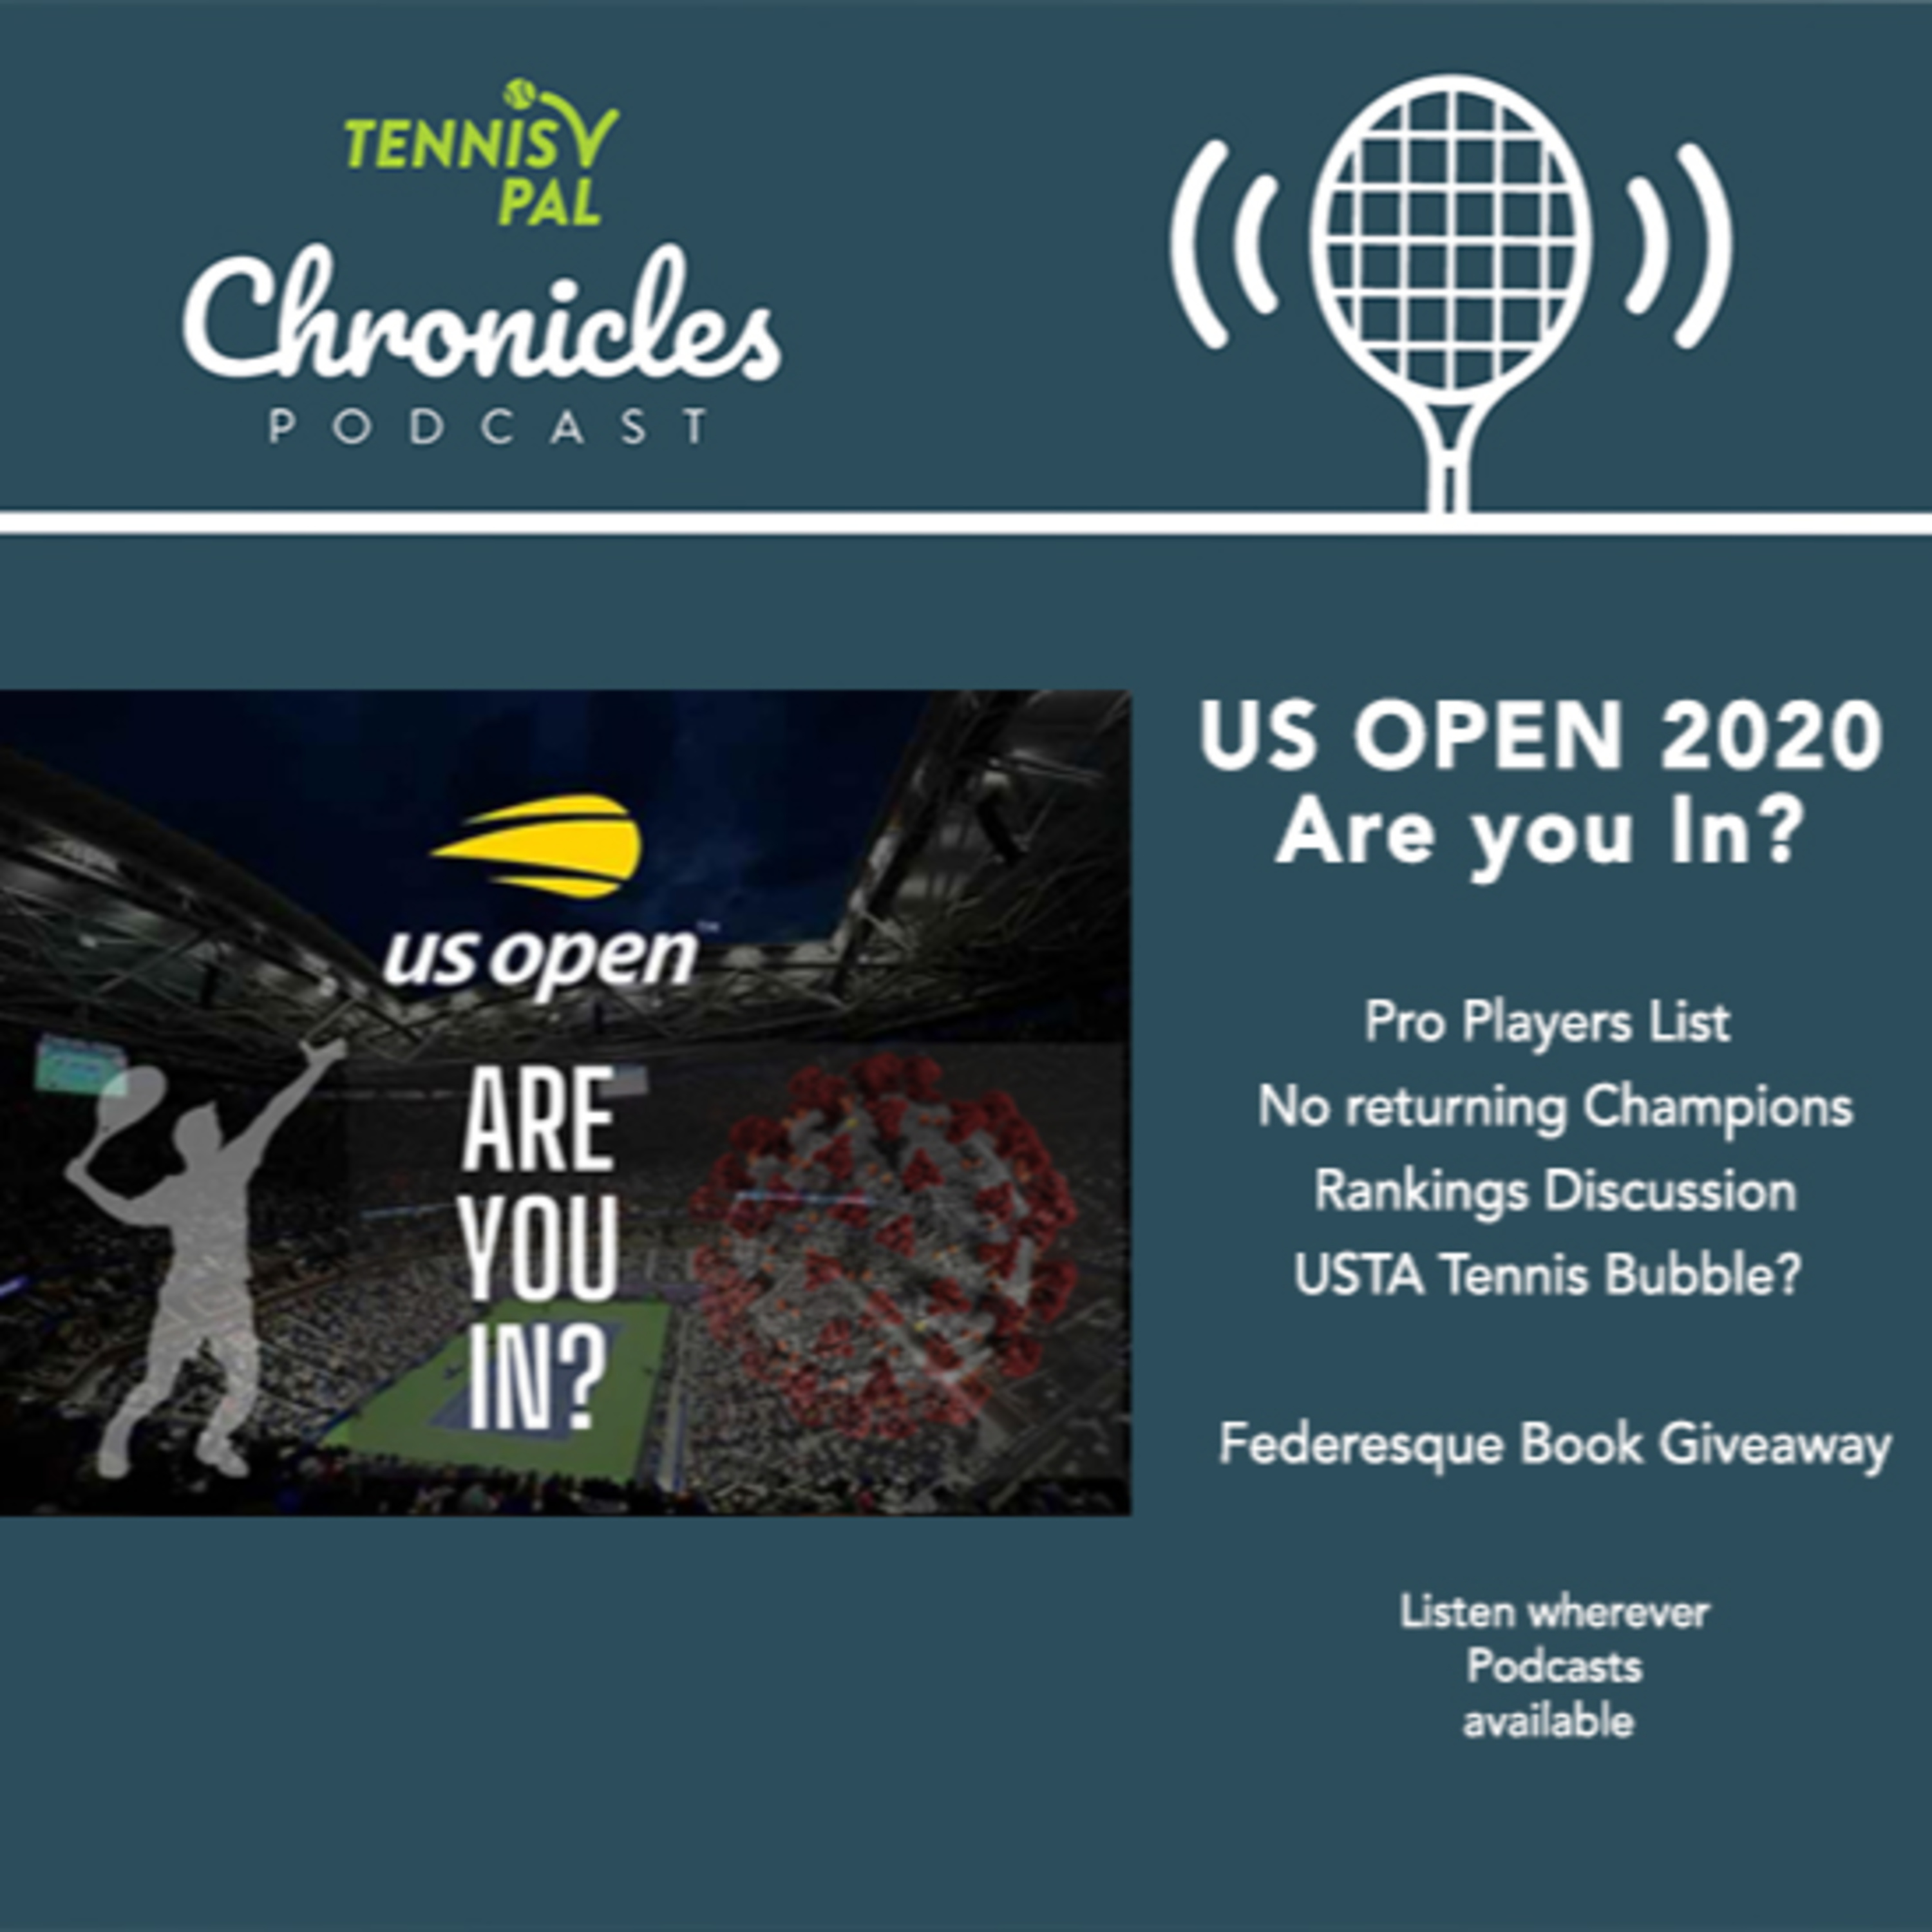 US OPEN 2020 Are you in? Pro Players List Rankings Discussion USTA Tennis Bubble